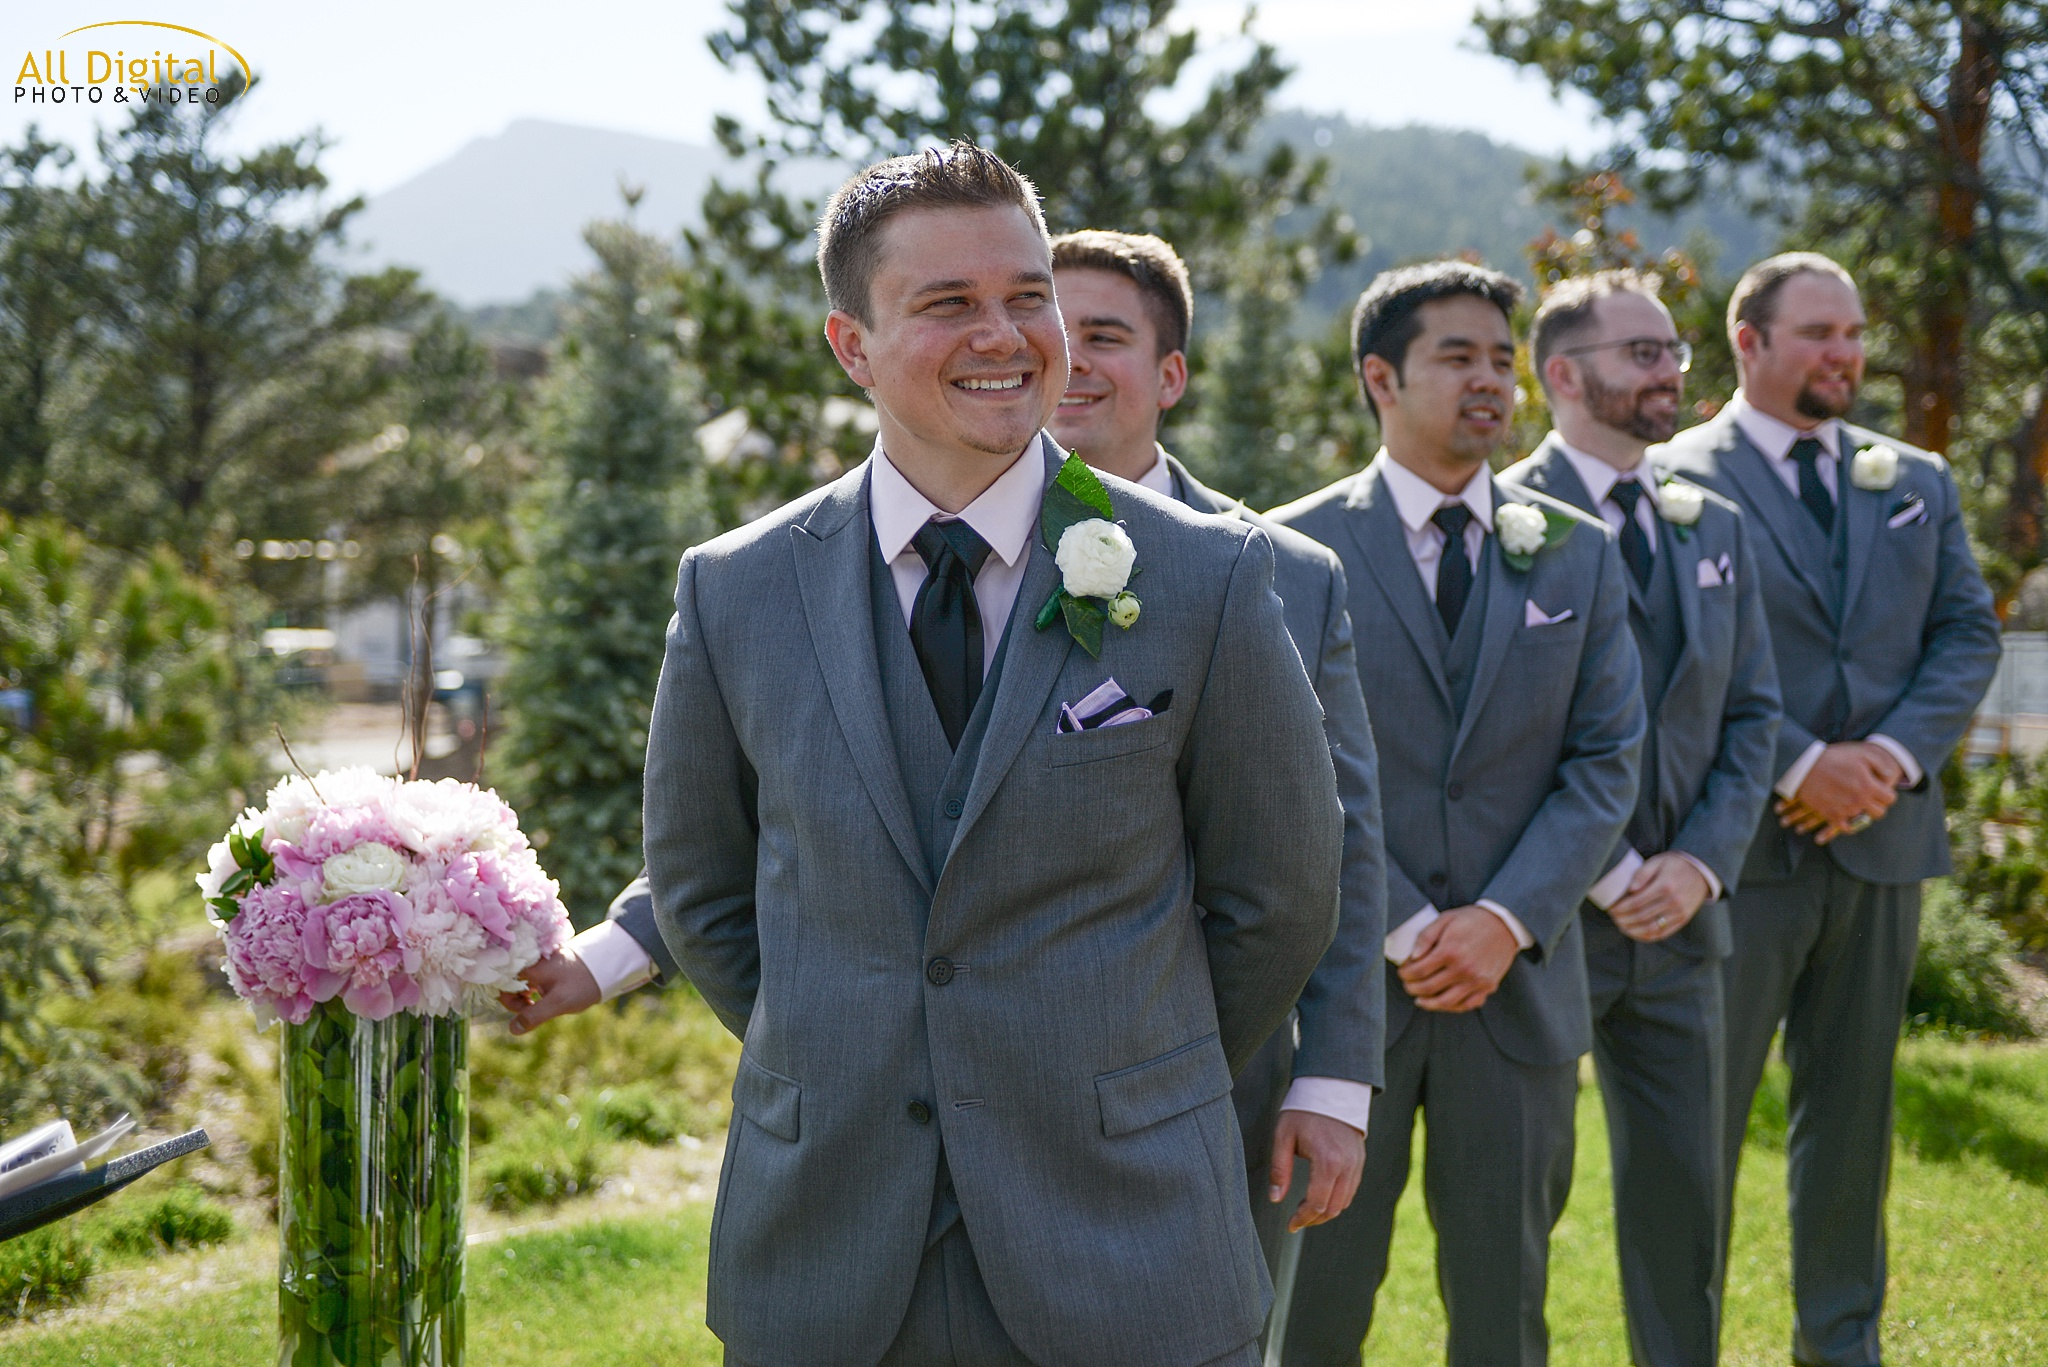 Brian watching Alison walk down the aisle at the Stanley Hotel in Estes Park, Colorado.